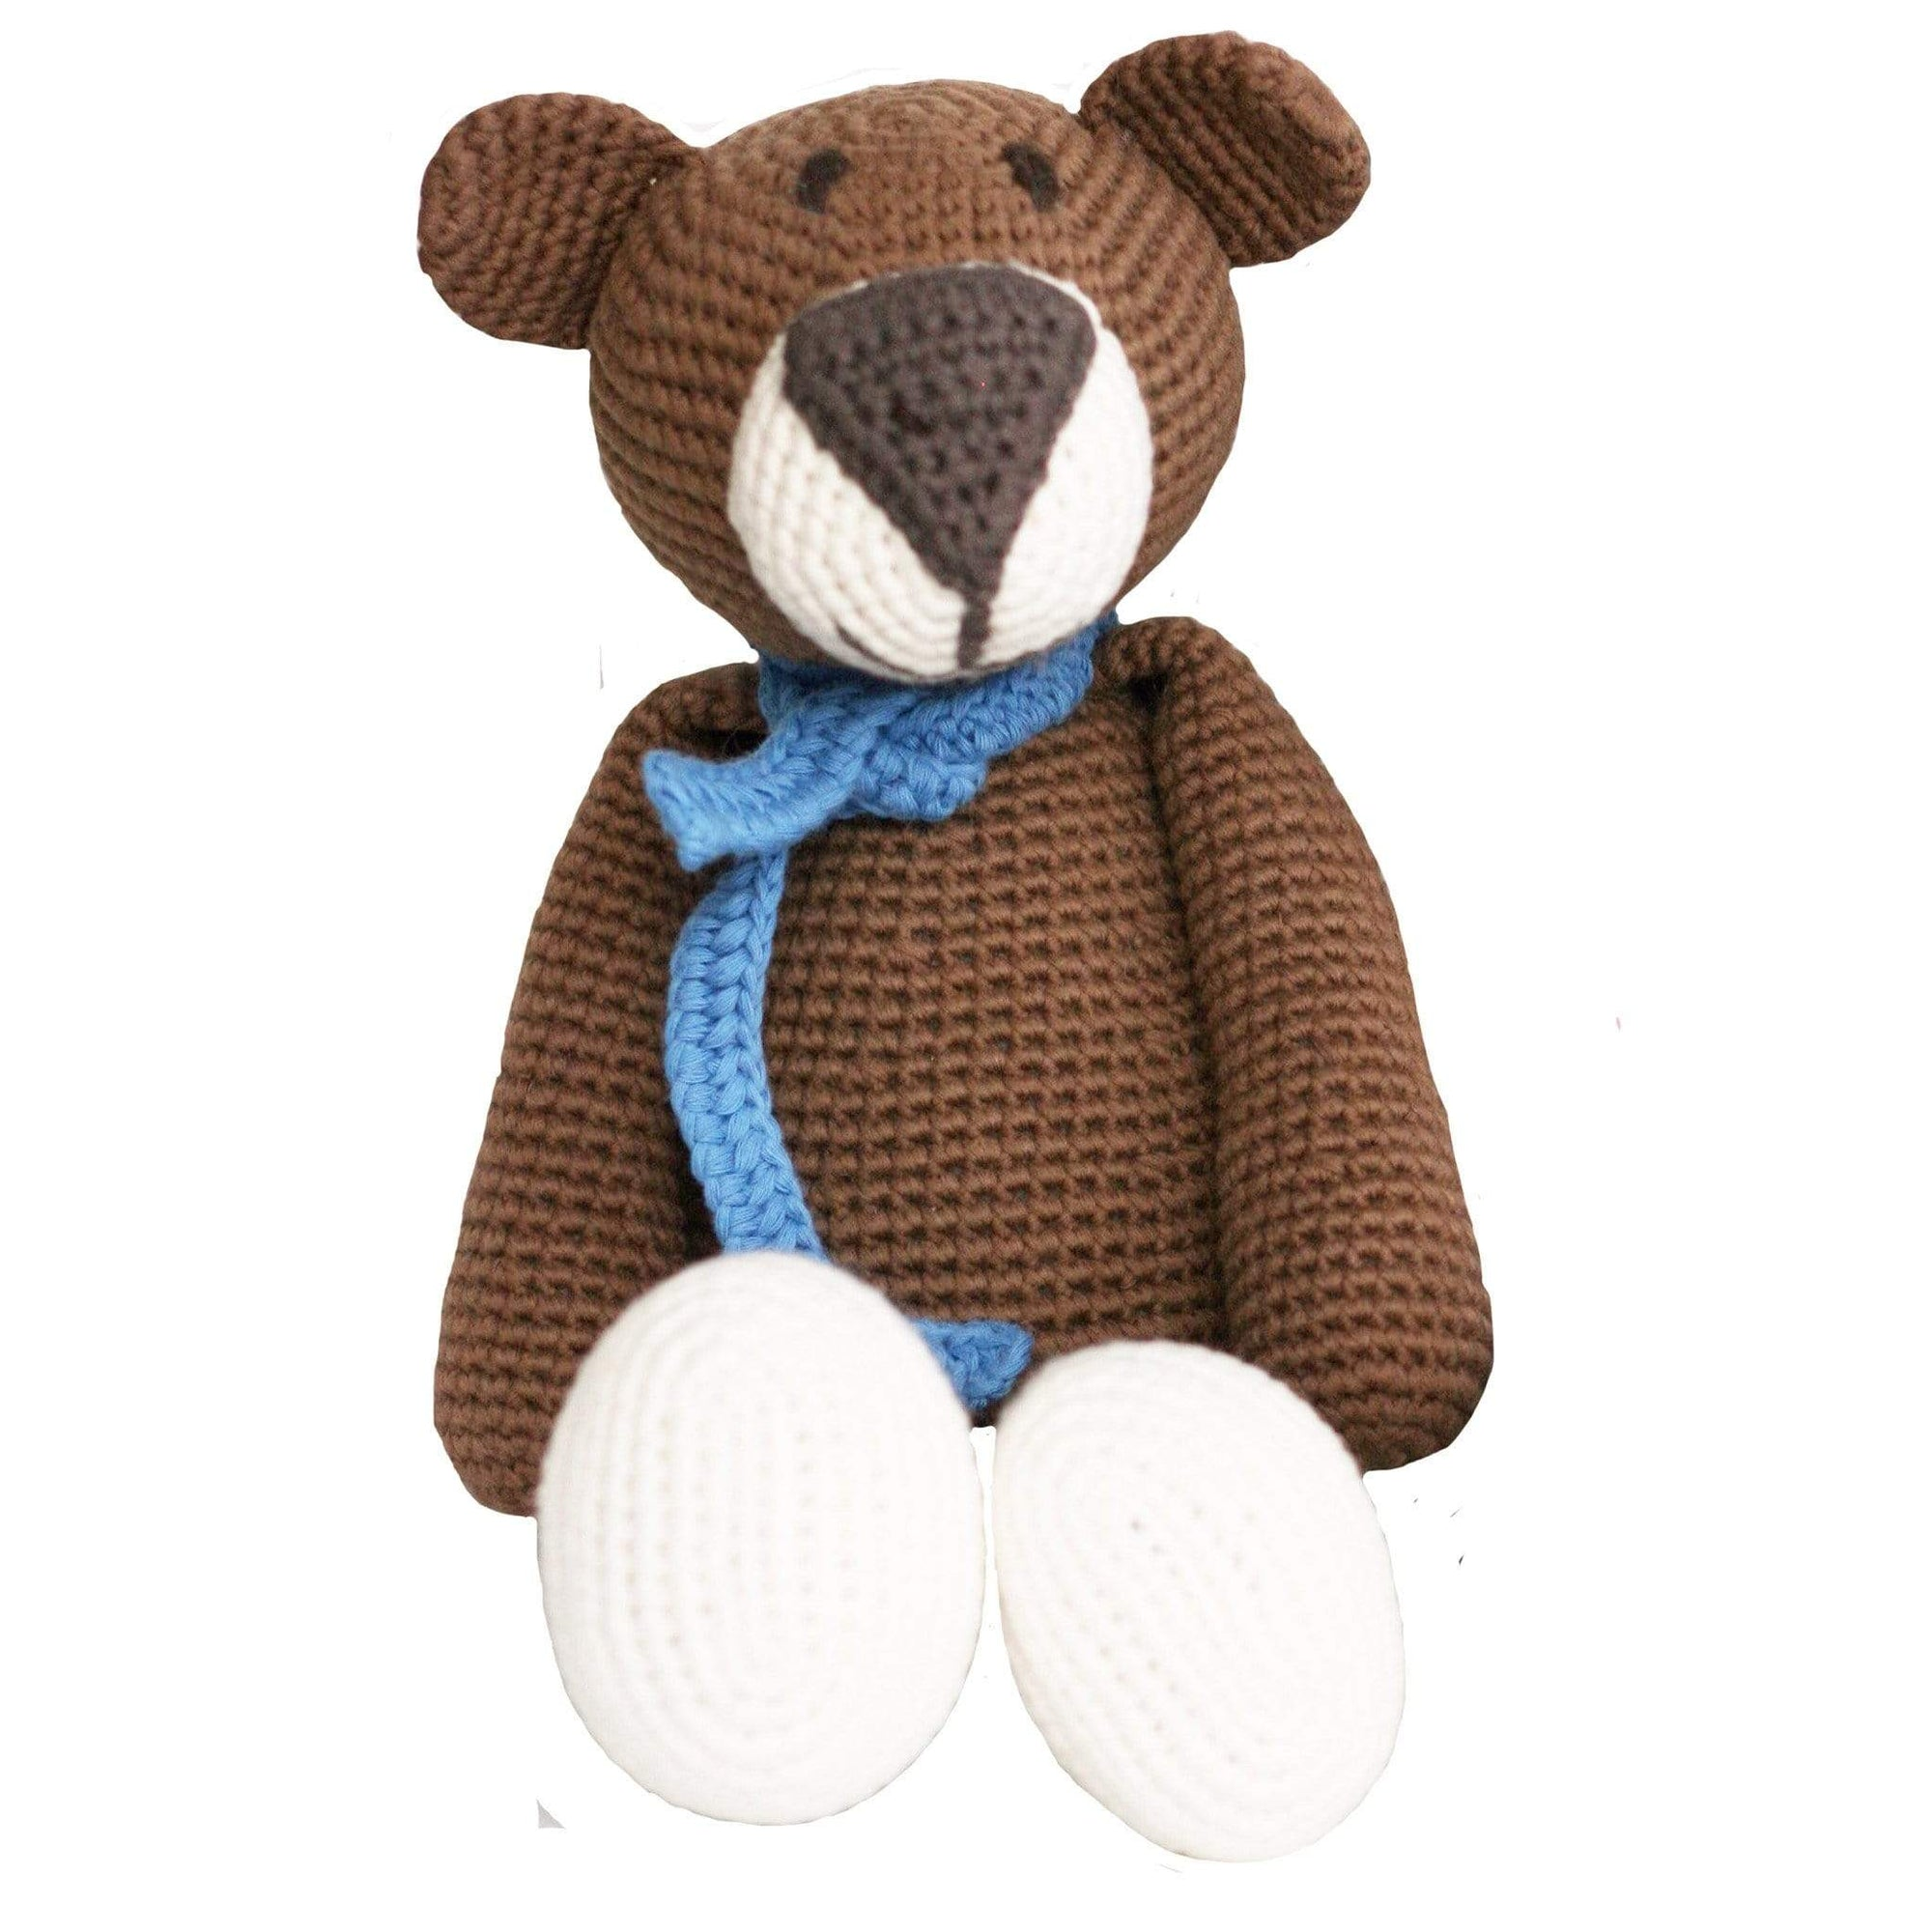 bebemoss.com stuffed animal Atty the bear - brown handmade by moms  gifts with purpose